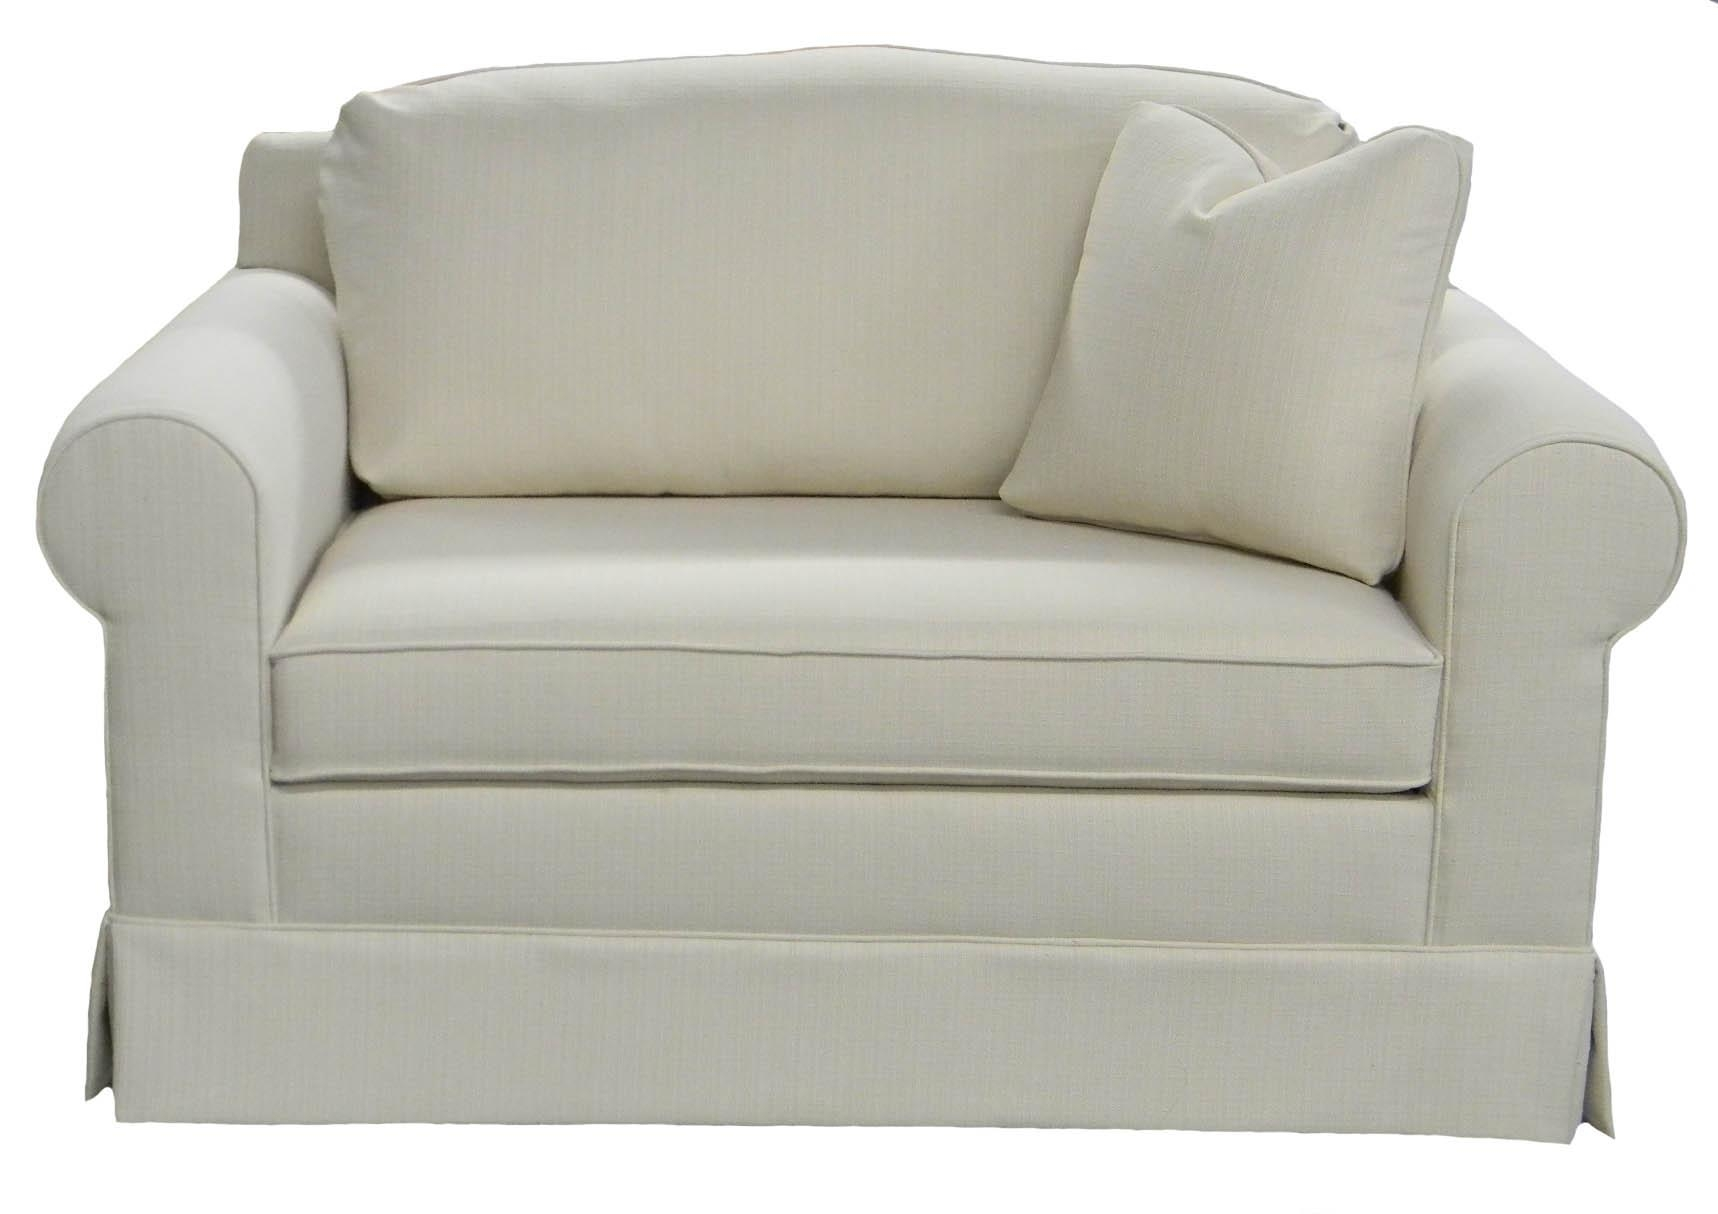 Furniture: Oversized Chair Slipcover | Sure Fit Sofa Covers With Covers For Sofas (Image 9 of 20)